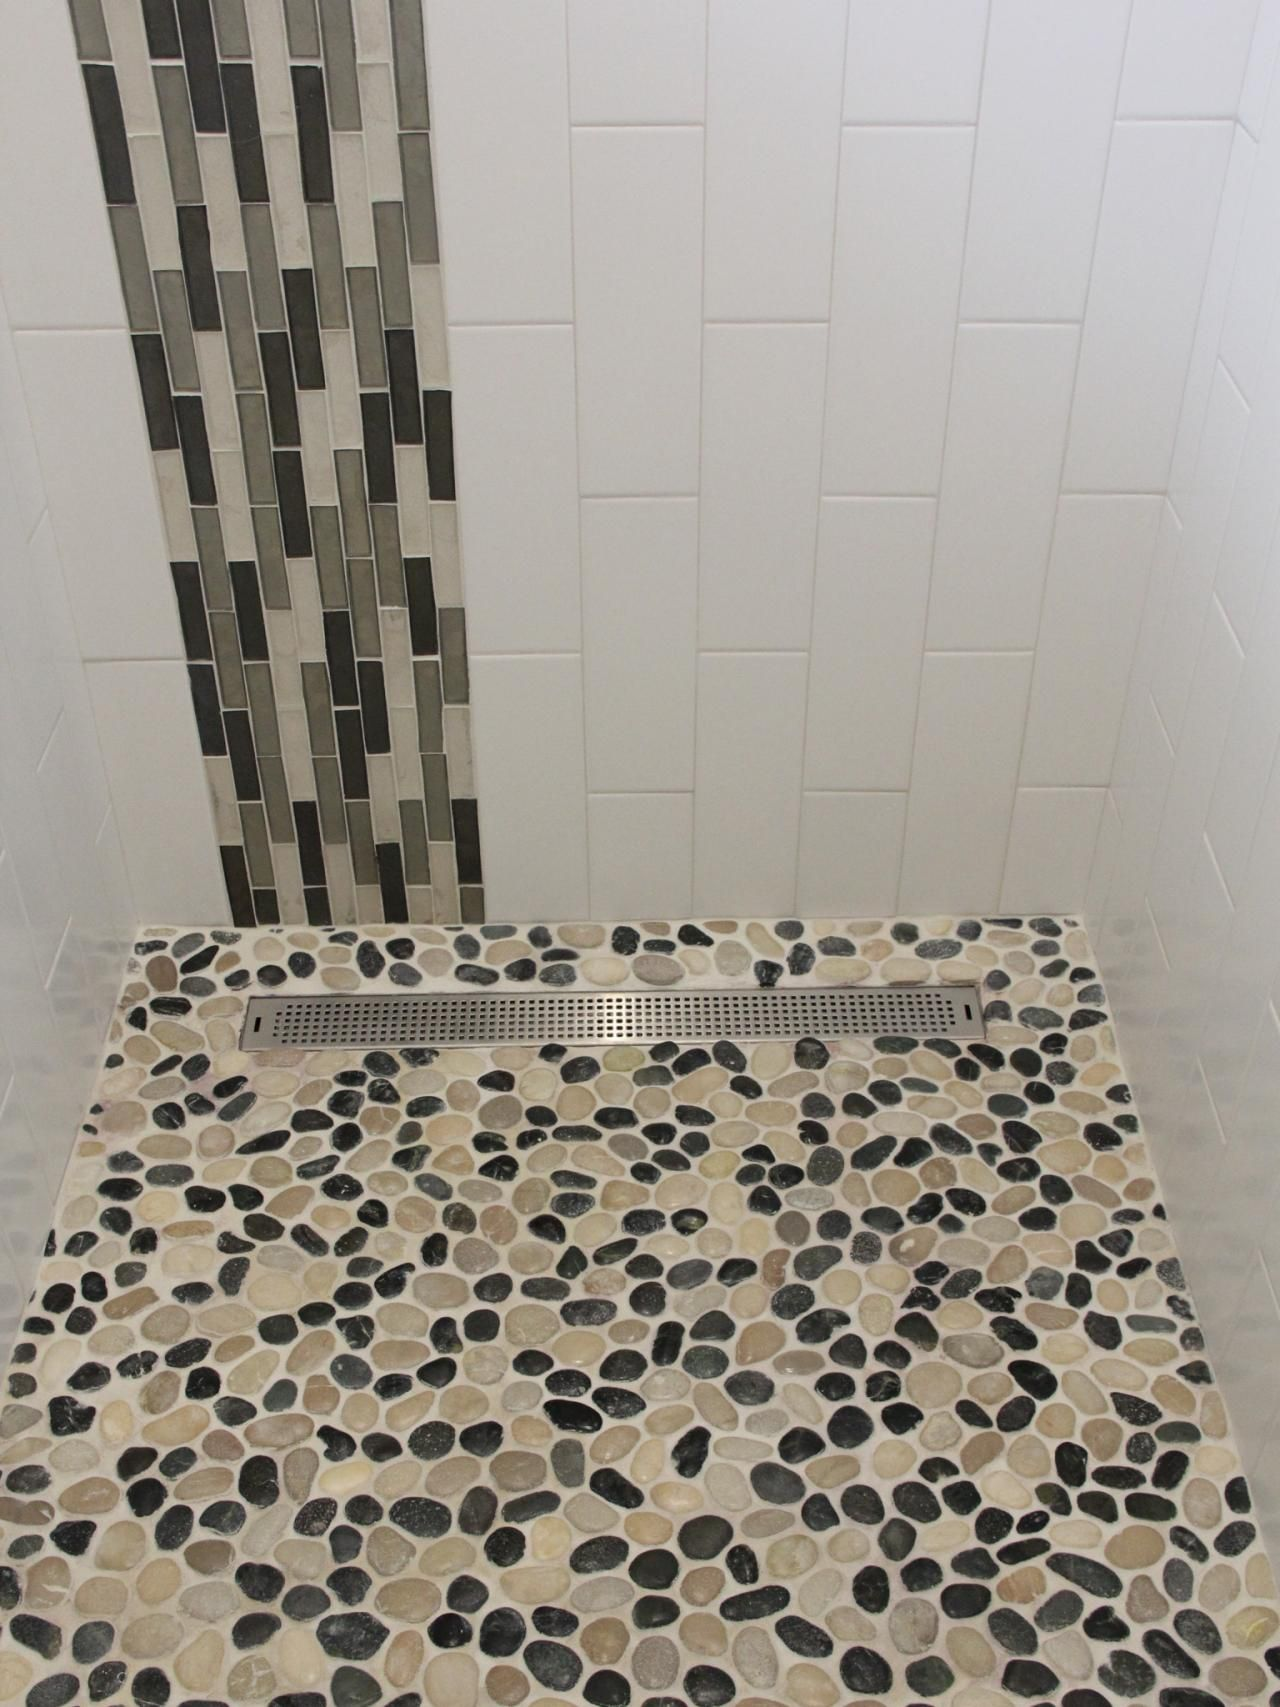 Fancy white subway wall tiled feat grey mosaic ceramic accent as fancy white subway wall tiled feat grey mosaic ceramic accent as well as river pebble shower doublecrazyfo Gallery